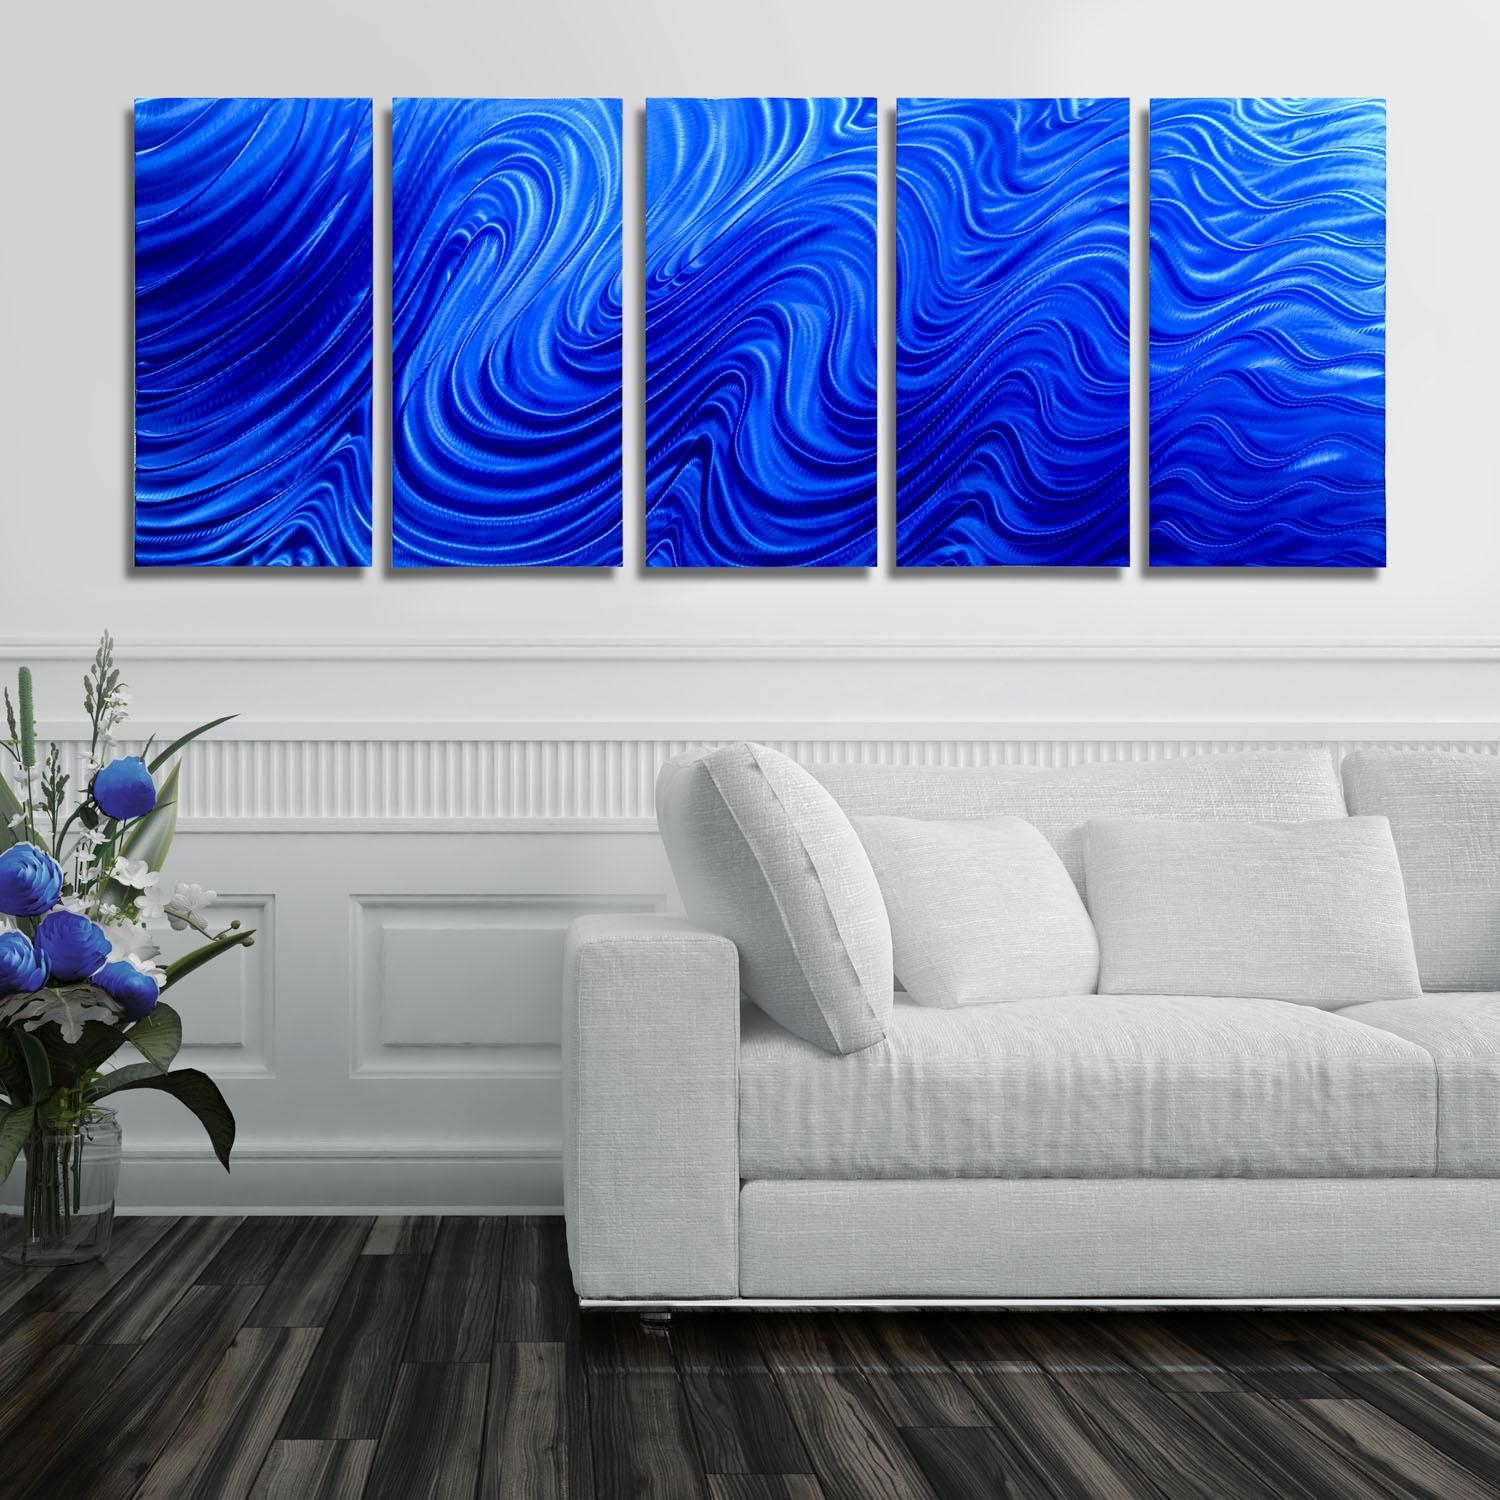 Blue Hypnotic Sands – Blue Four Panel Abstract Metal Wall Art With Regard To Large Abstract Metal Wall Art (Image 8 of 20)